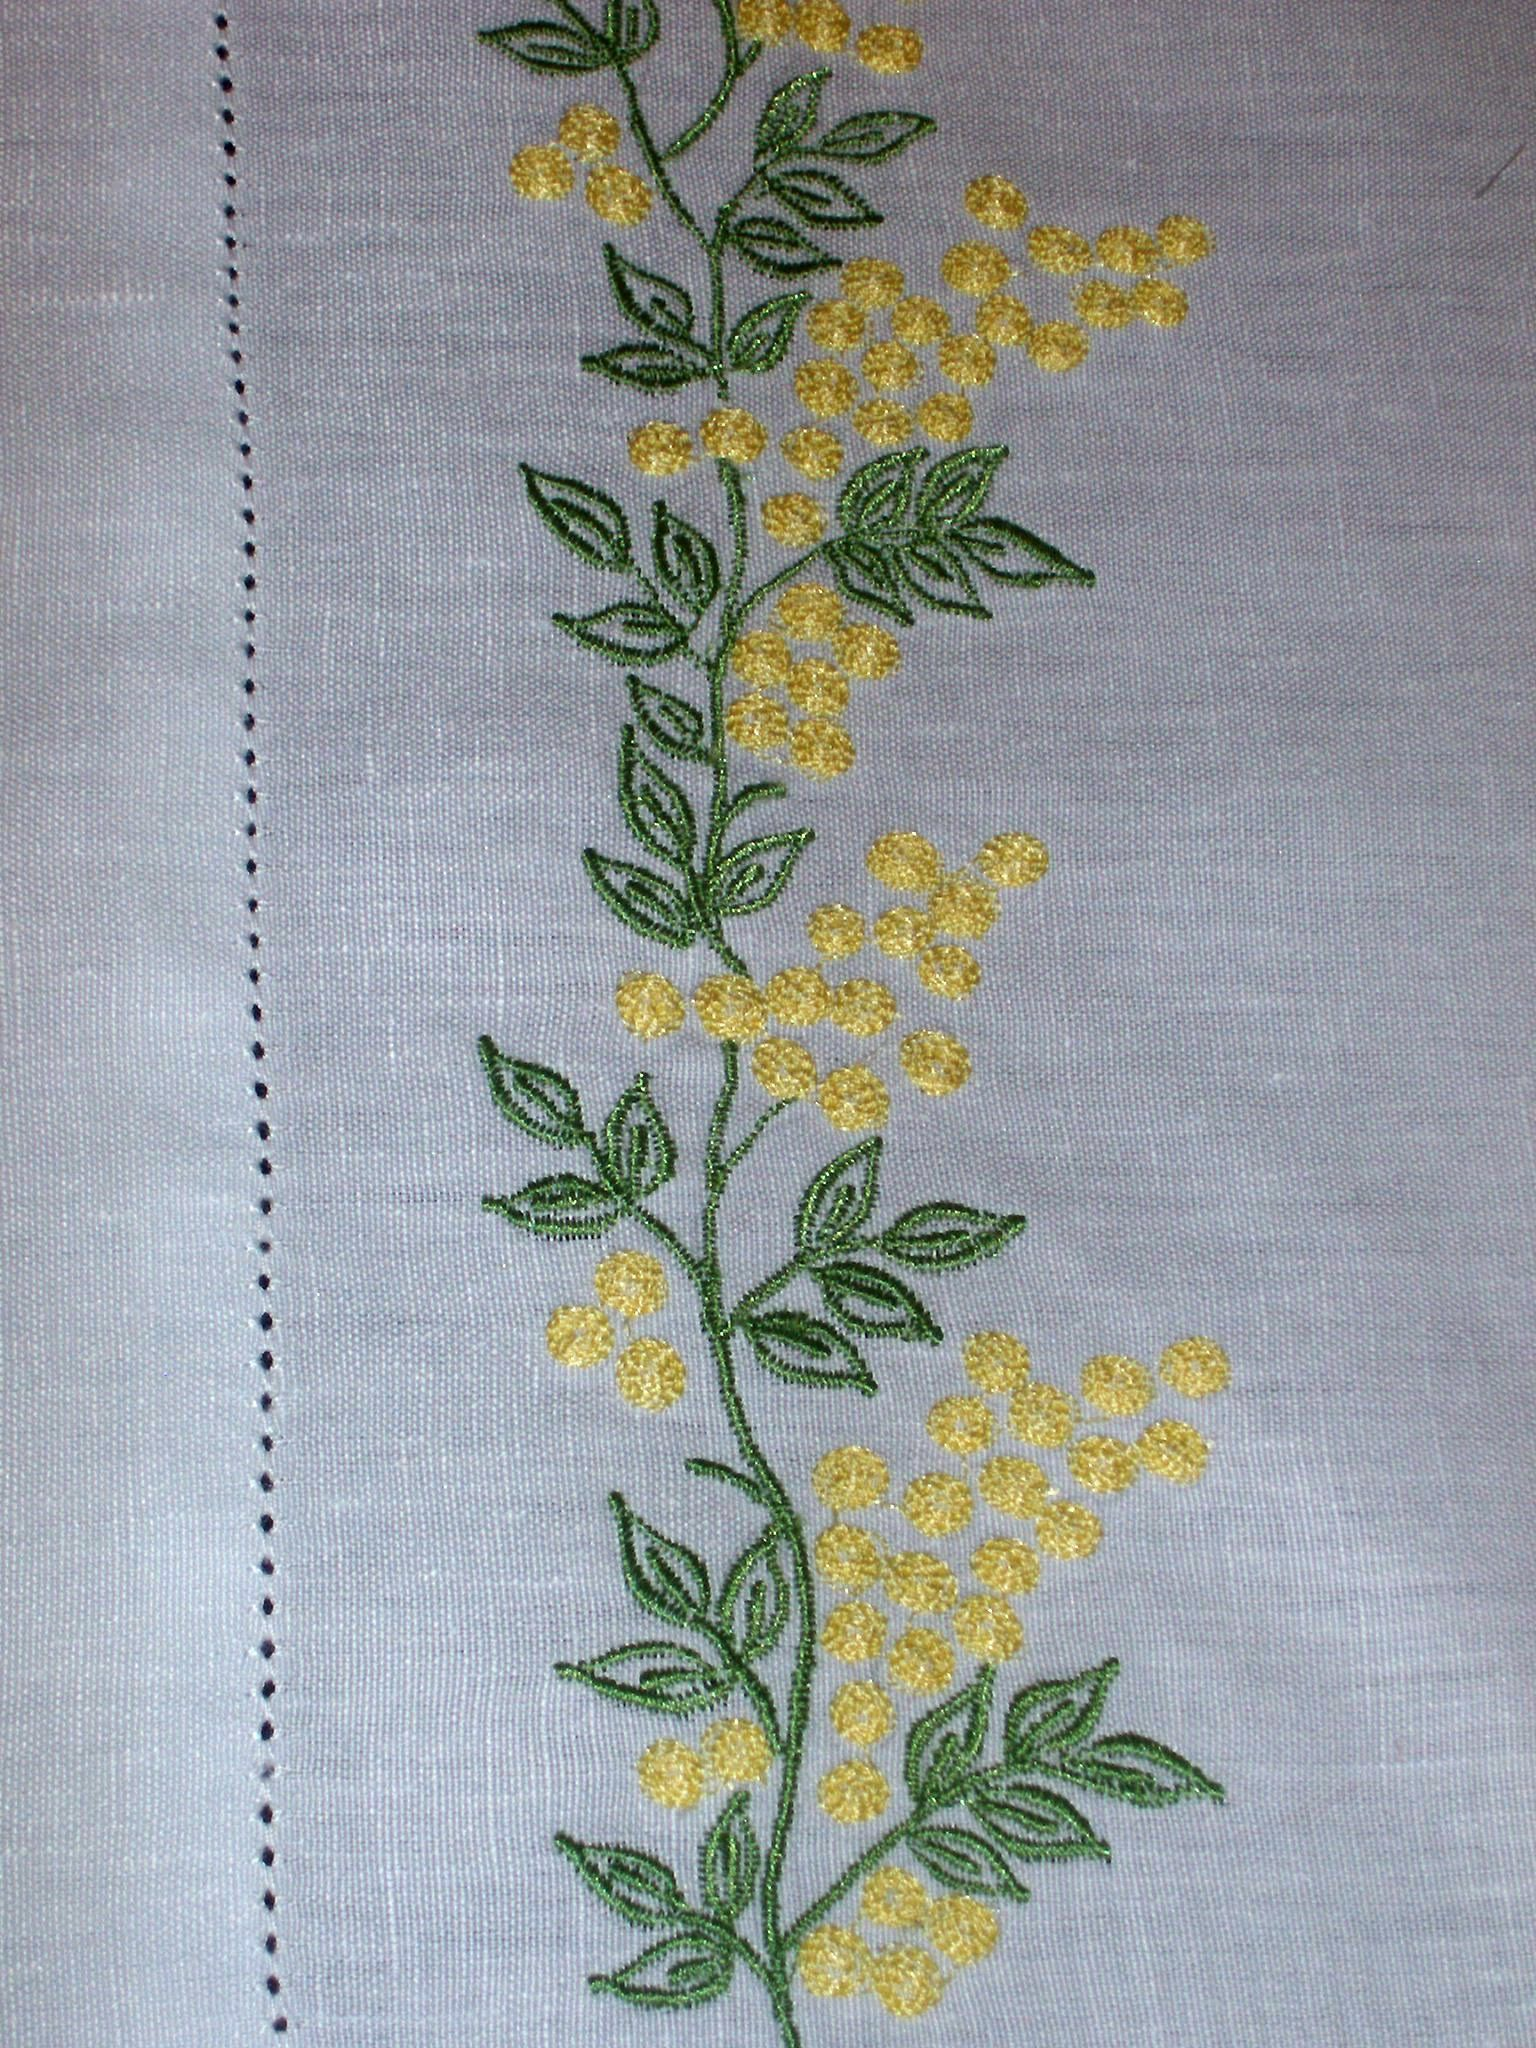 Embroidery embroidery pinterest embroidery hand embroidery